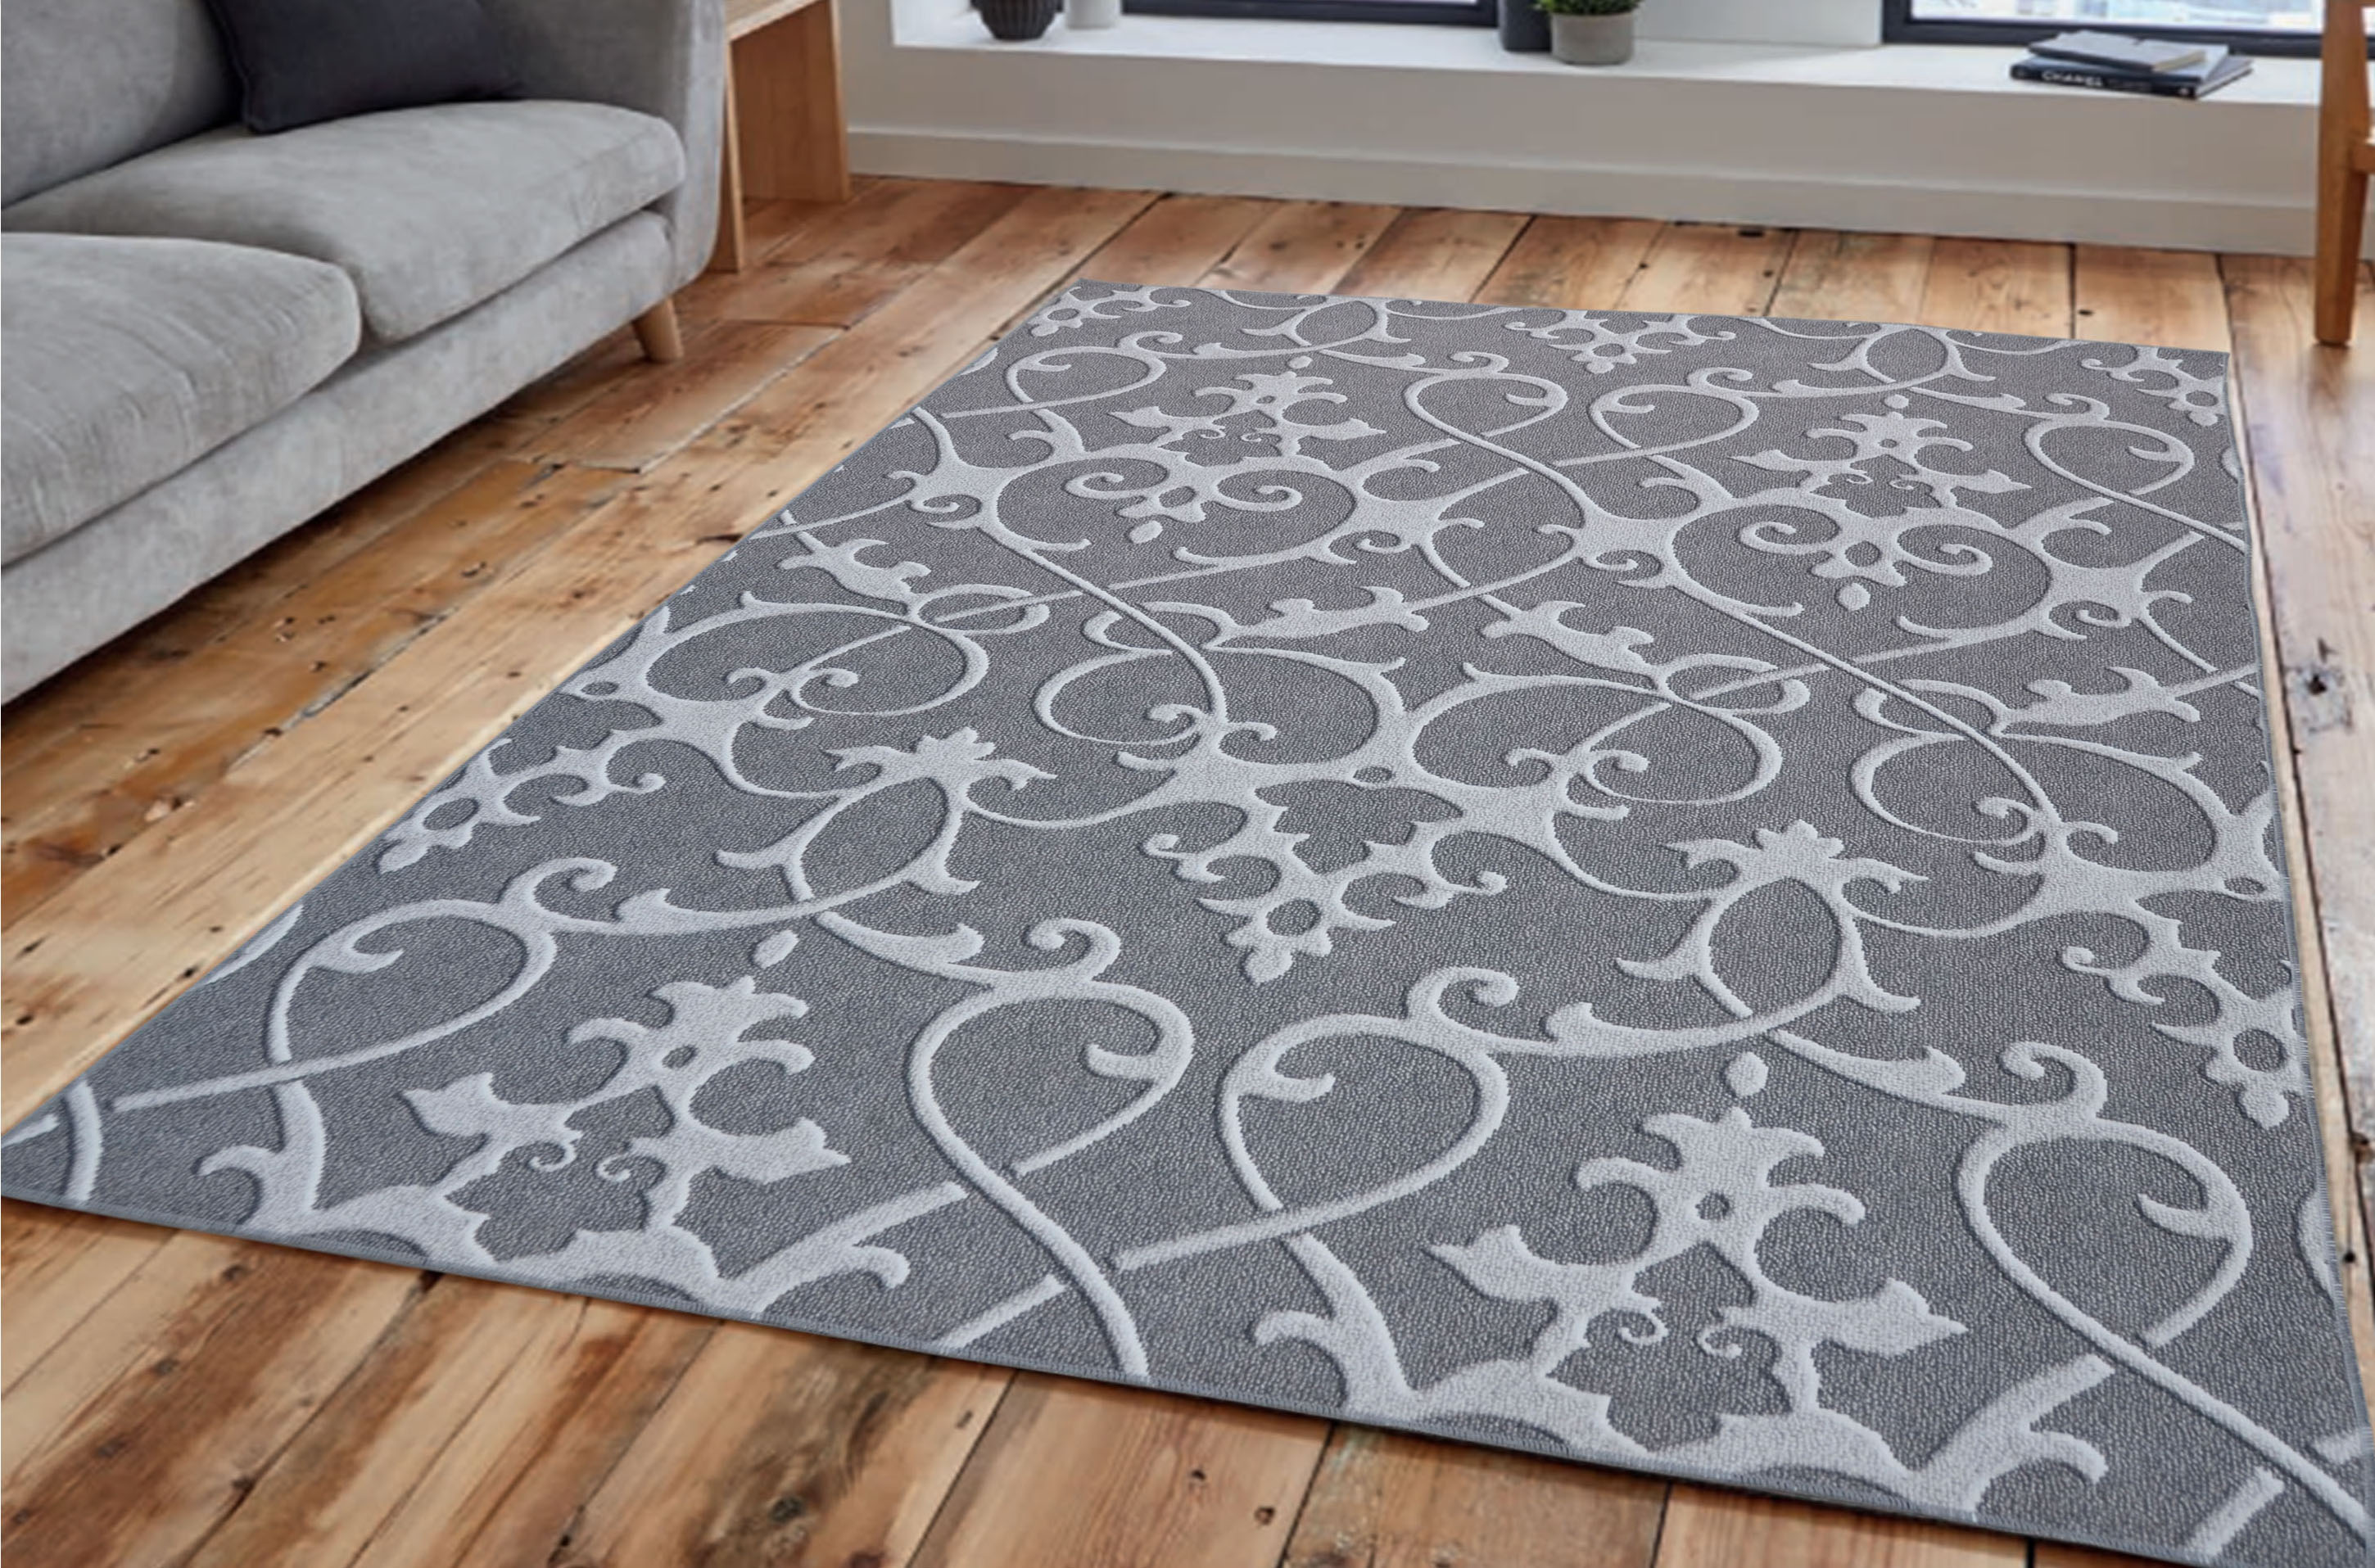 Modern Living Teppich Polyester House Alfombra Modern Microfiber Tufted City Life Extra Large Teppich Buy Polyester Soft Carpet Teppich Rug Modern Rugs For Living Room